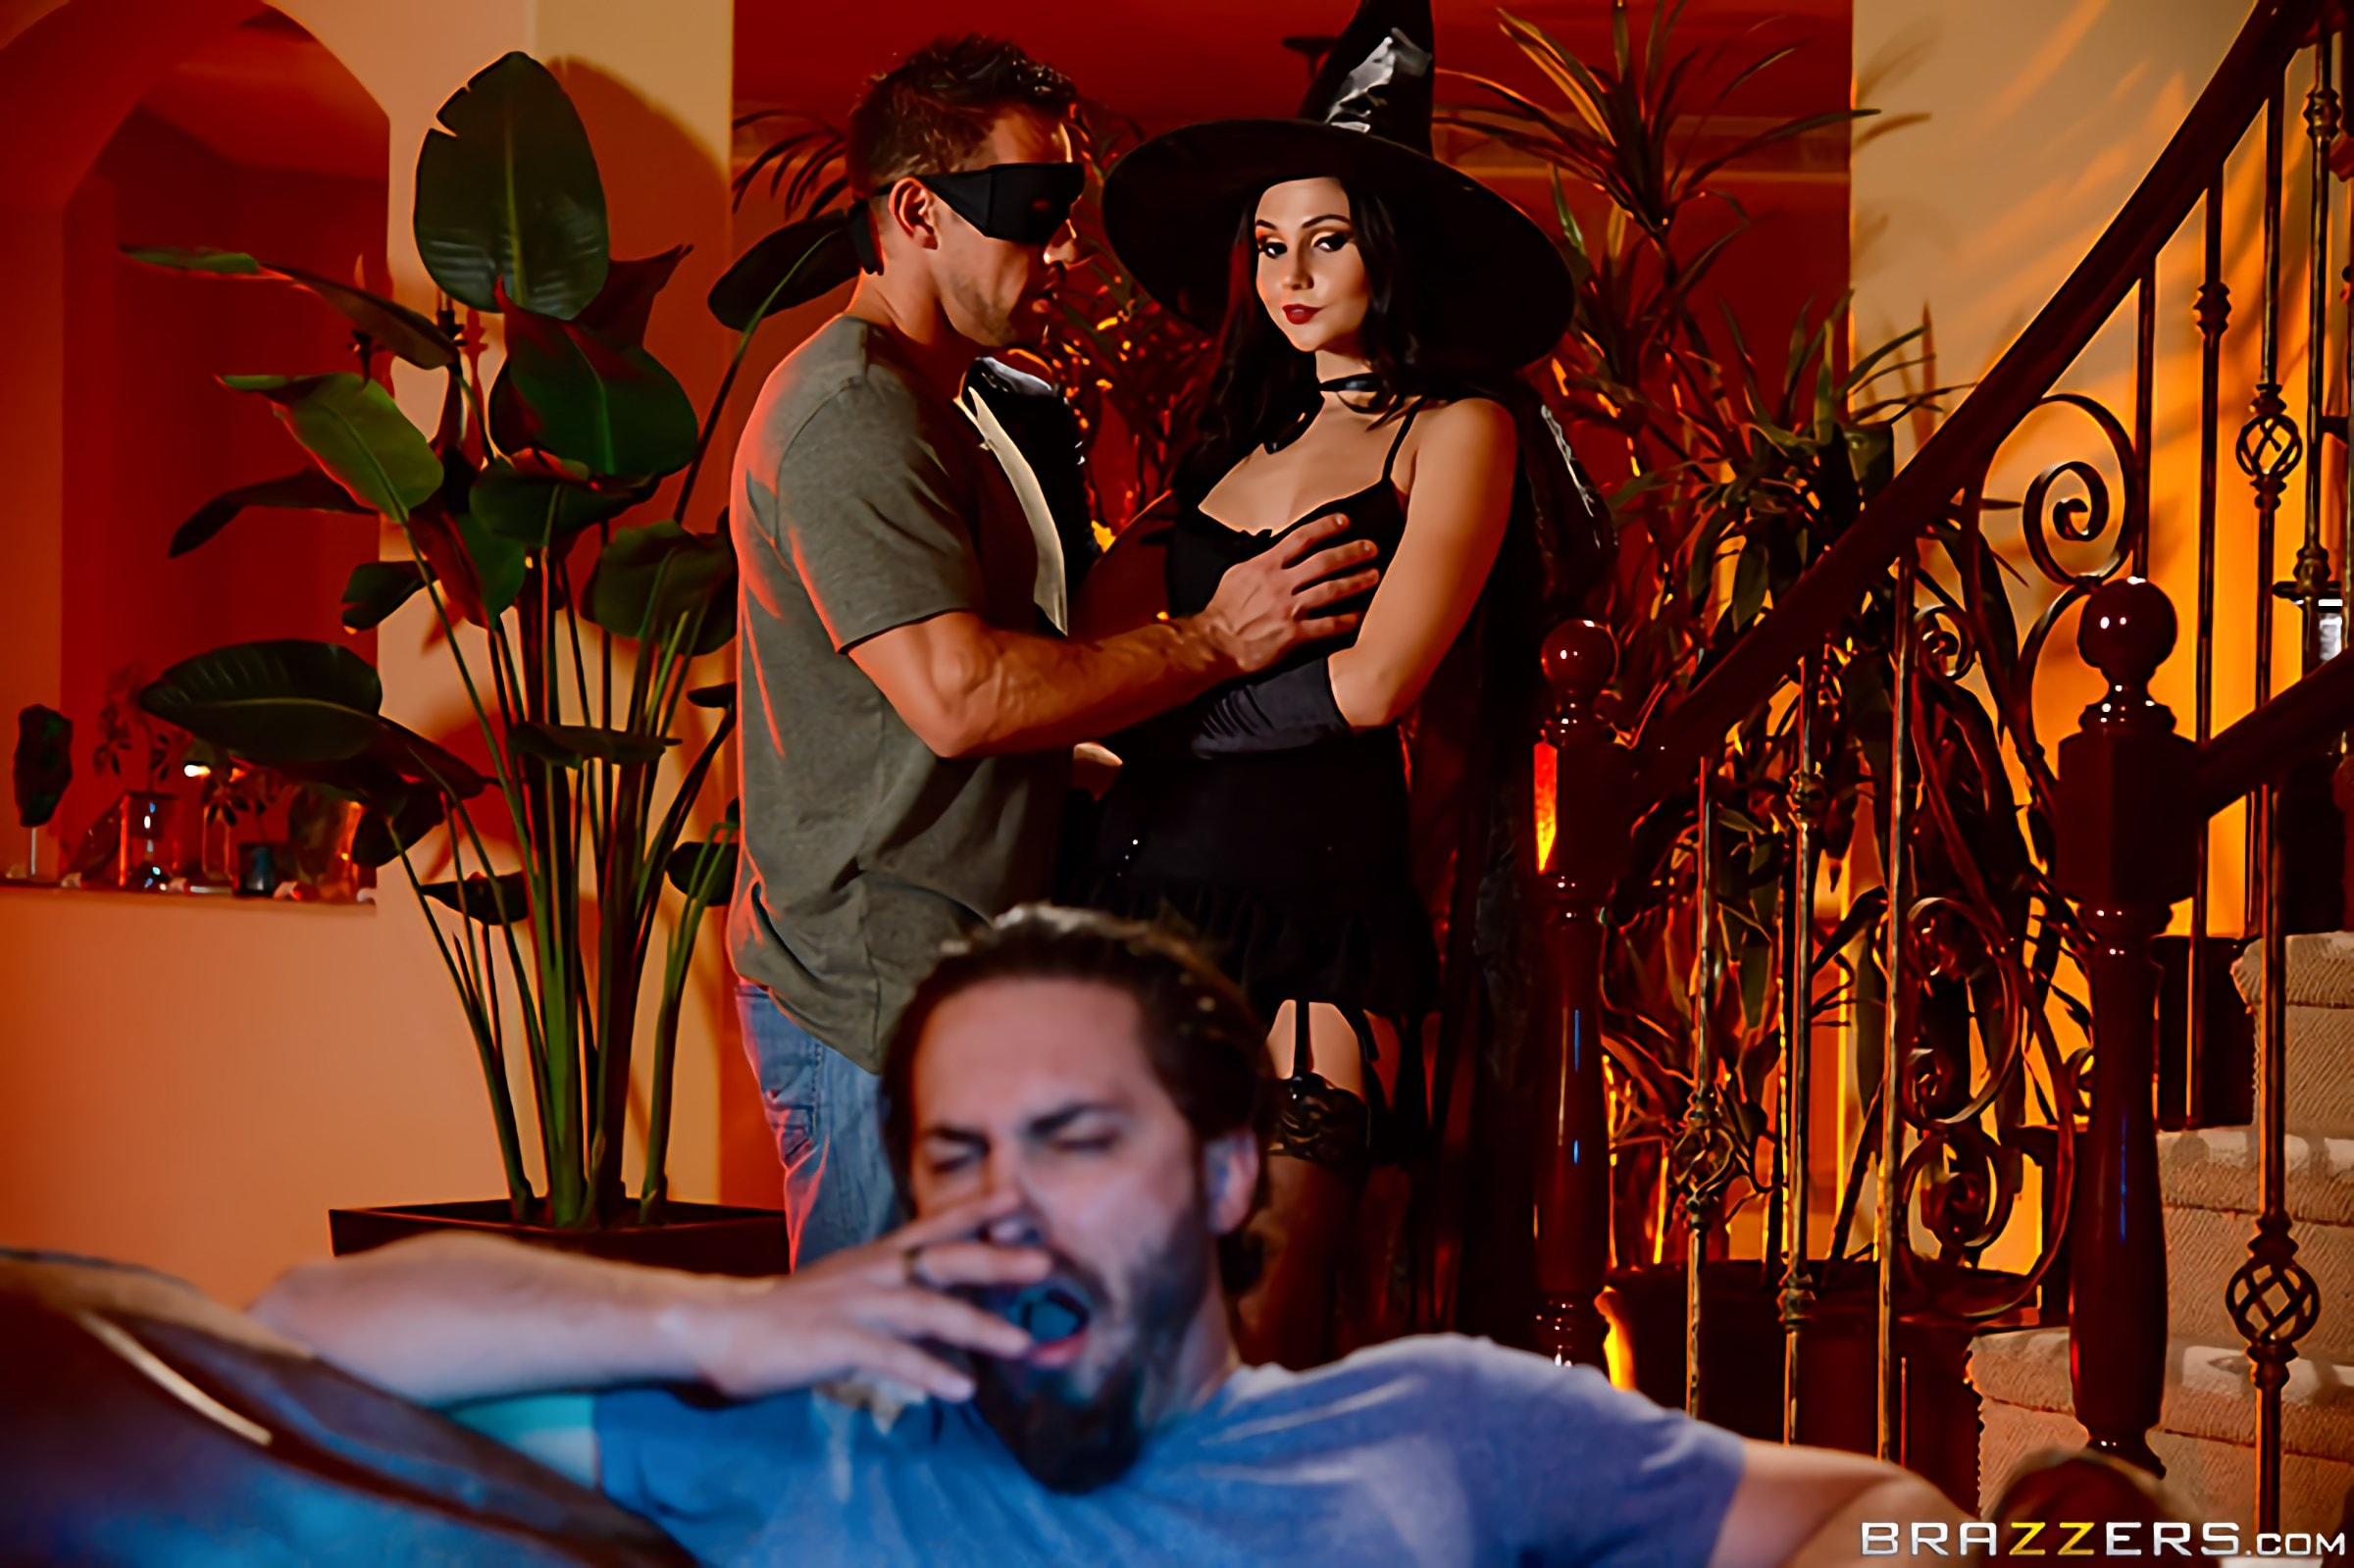 Brazzers 'Dick Or Treat' starring Ariana Marie (Photo 13)